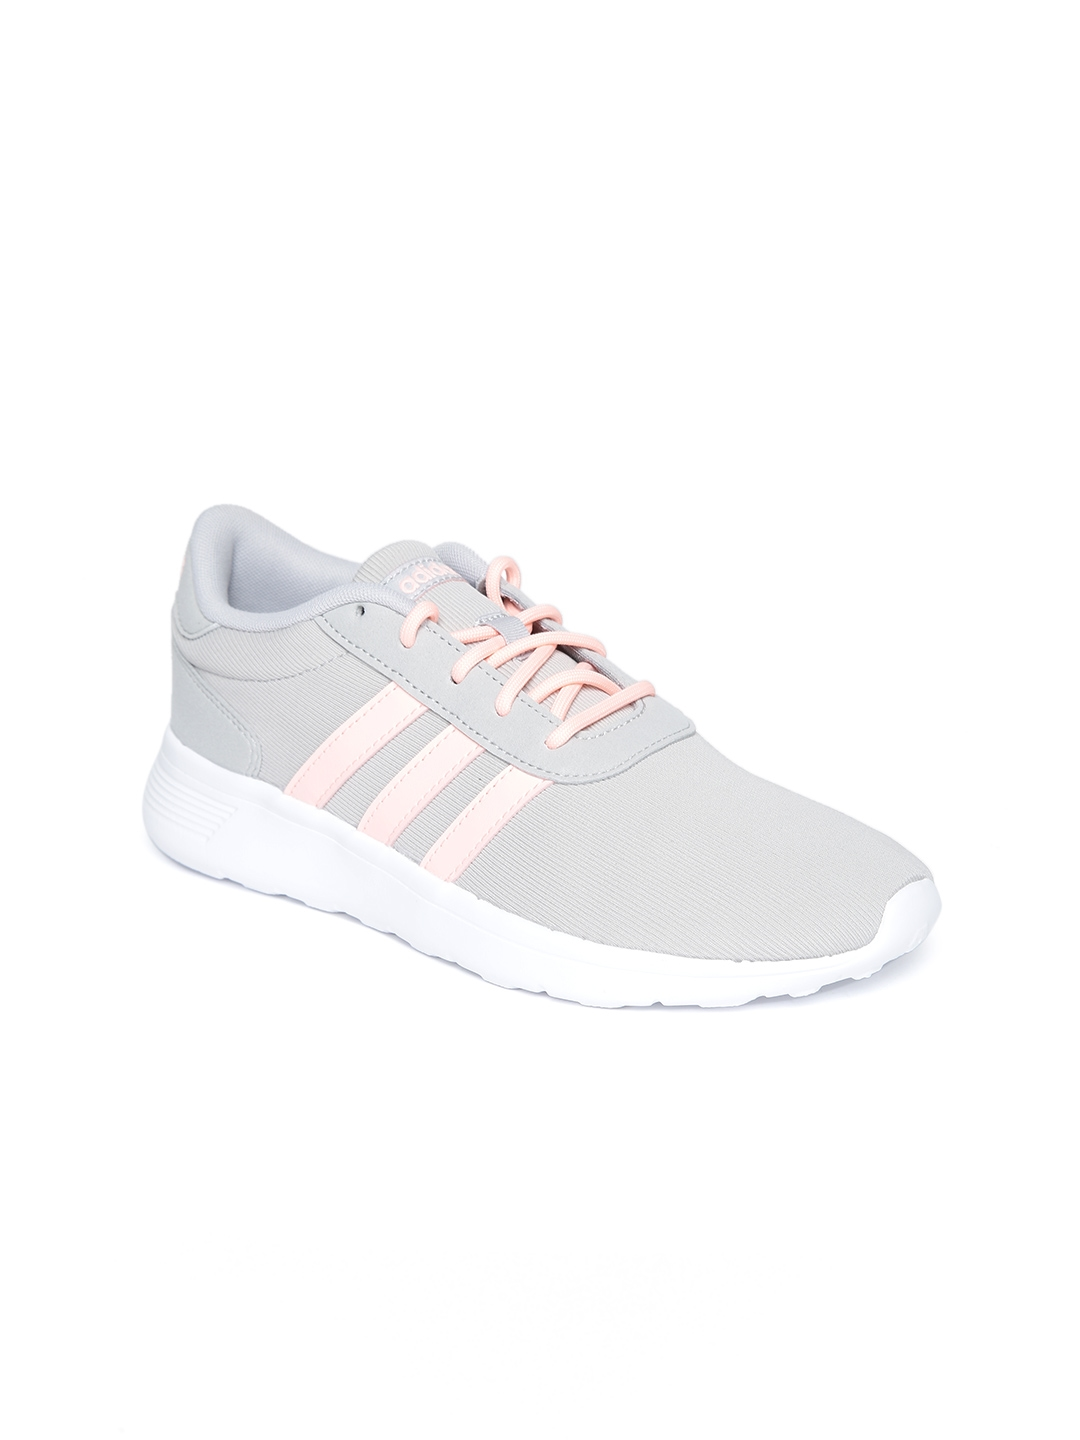 a695e4e42d14e5 Buy Adidas Women Beige Lite Racer Running Shoes - Sports Shoes for ...